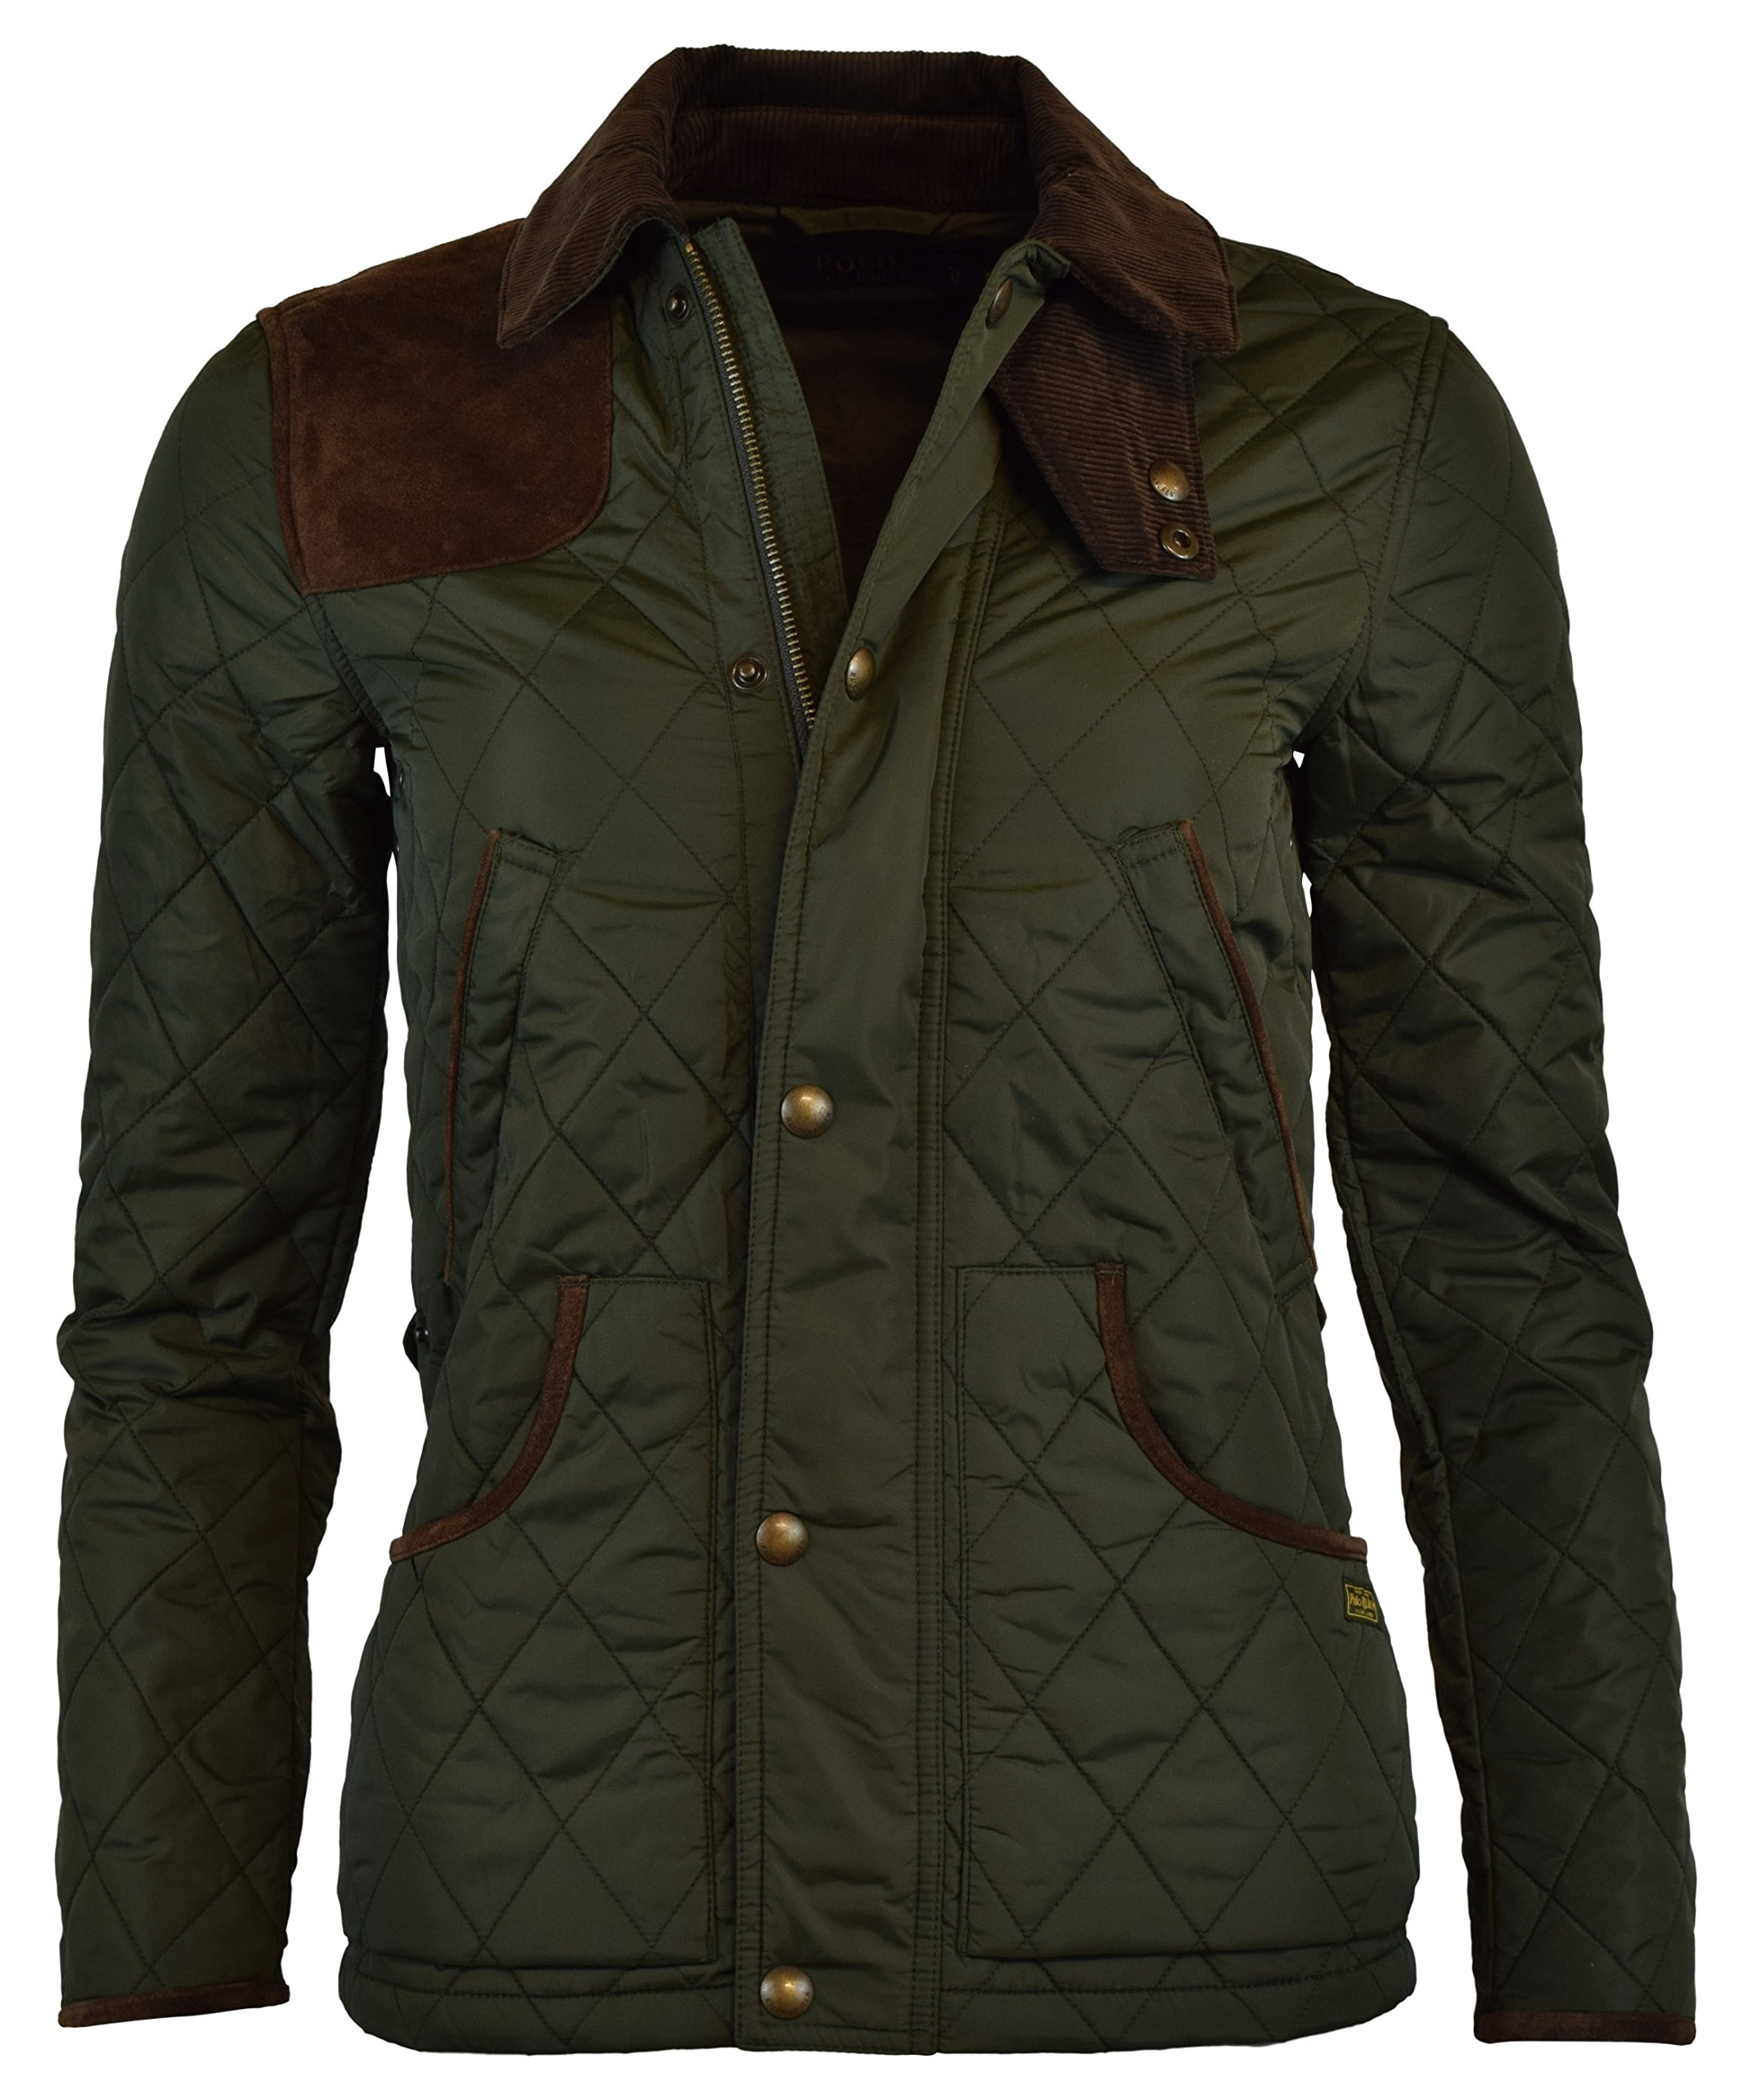 Polo Ralph Lauren Womens Nylon Suede Quilted Jacket - XS - Litchfield